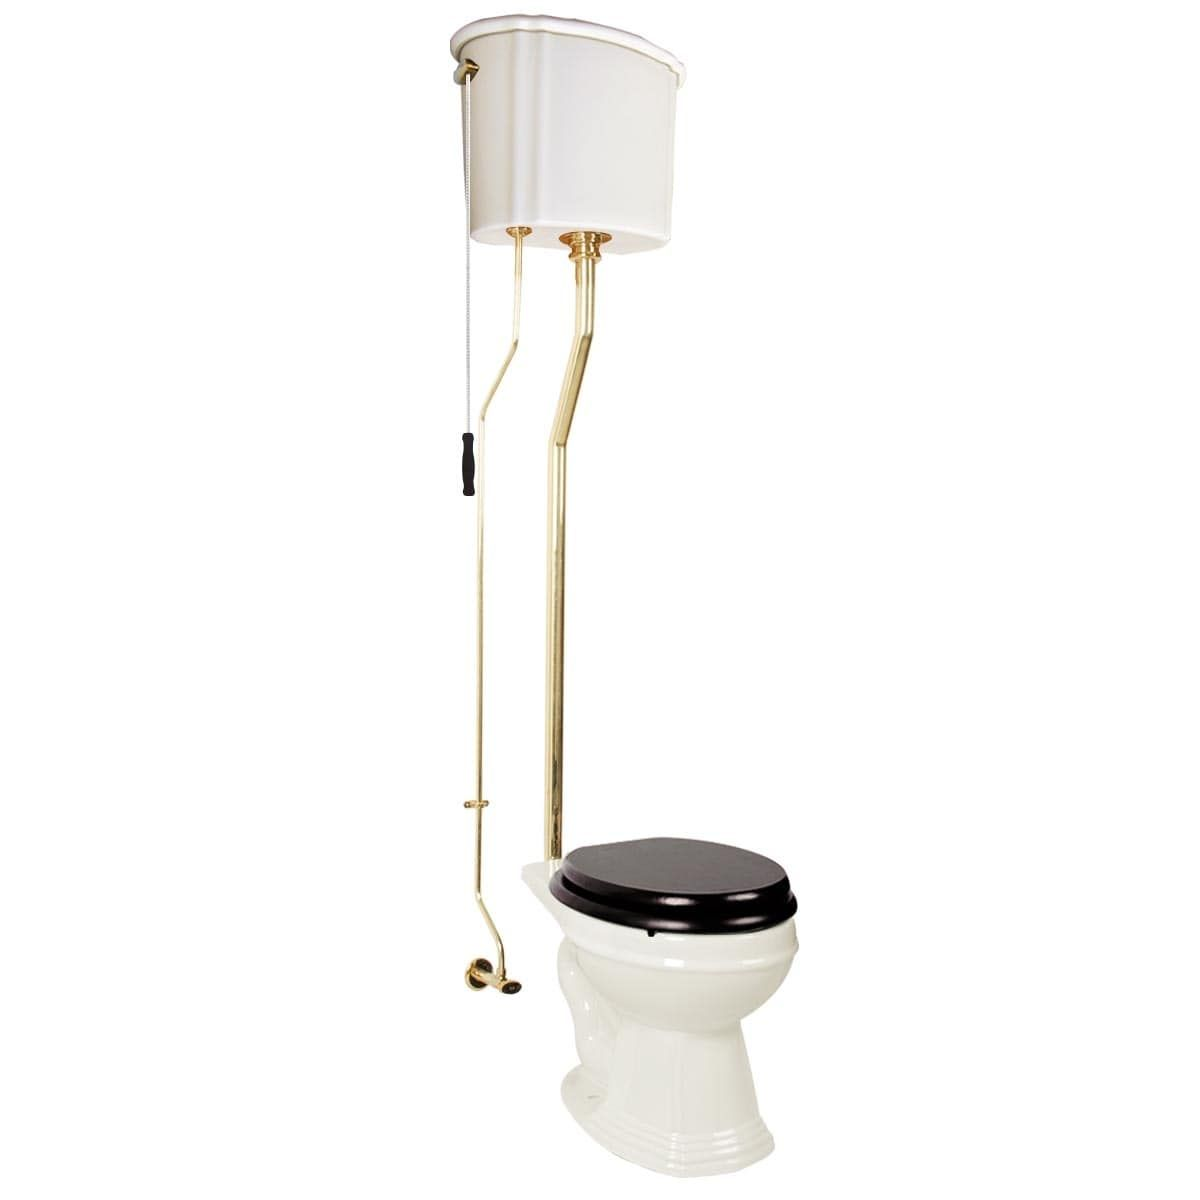 Pull Chain Toilet Pull Chain Toilet With Biscuit China Finish Brass Lpipe And Round